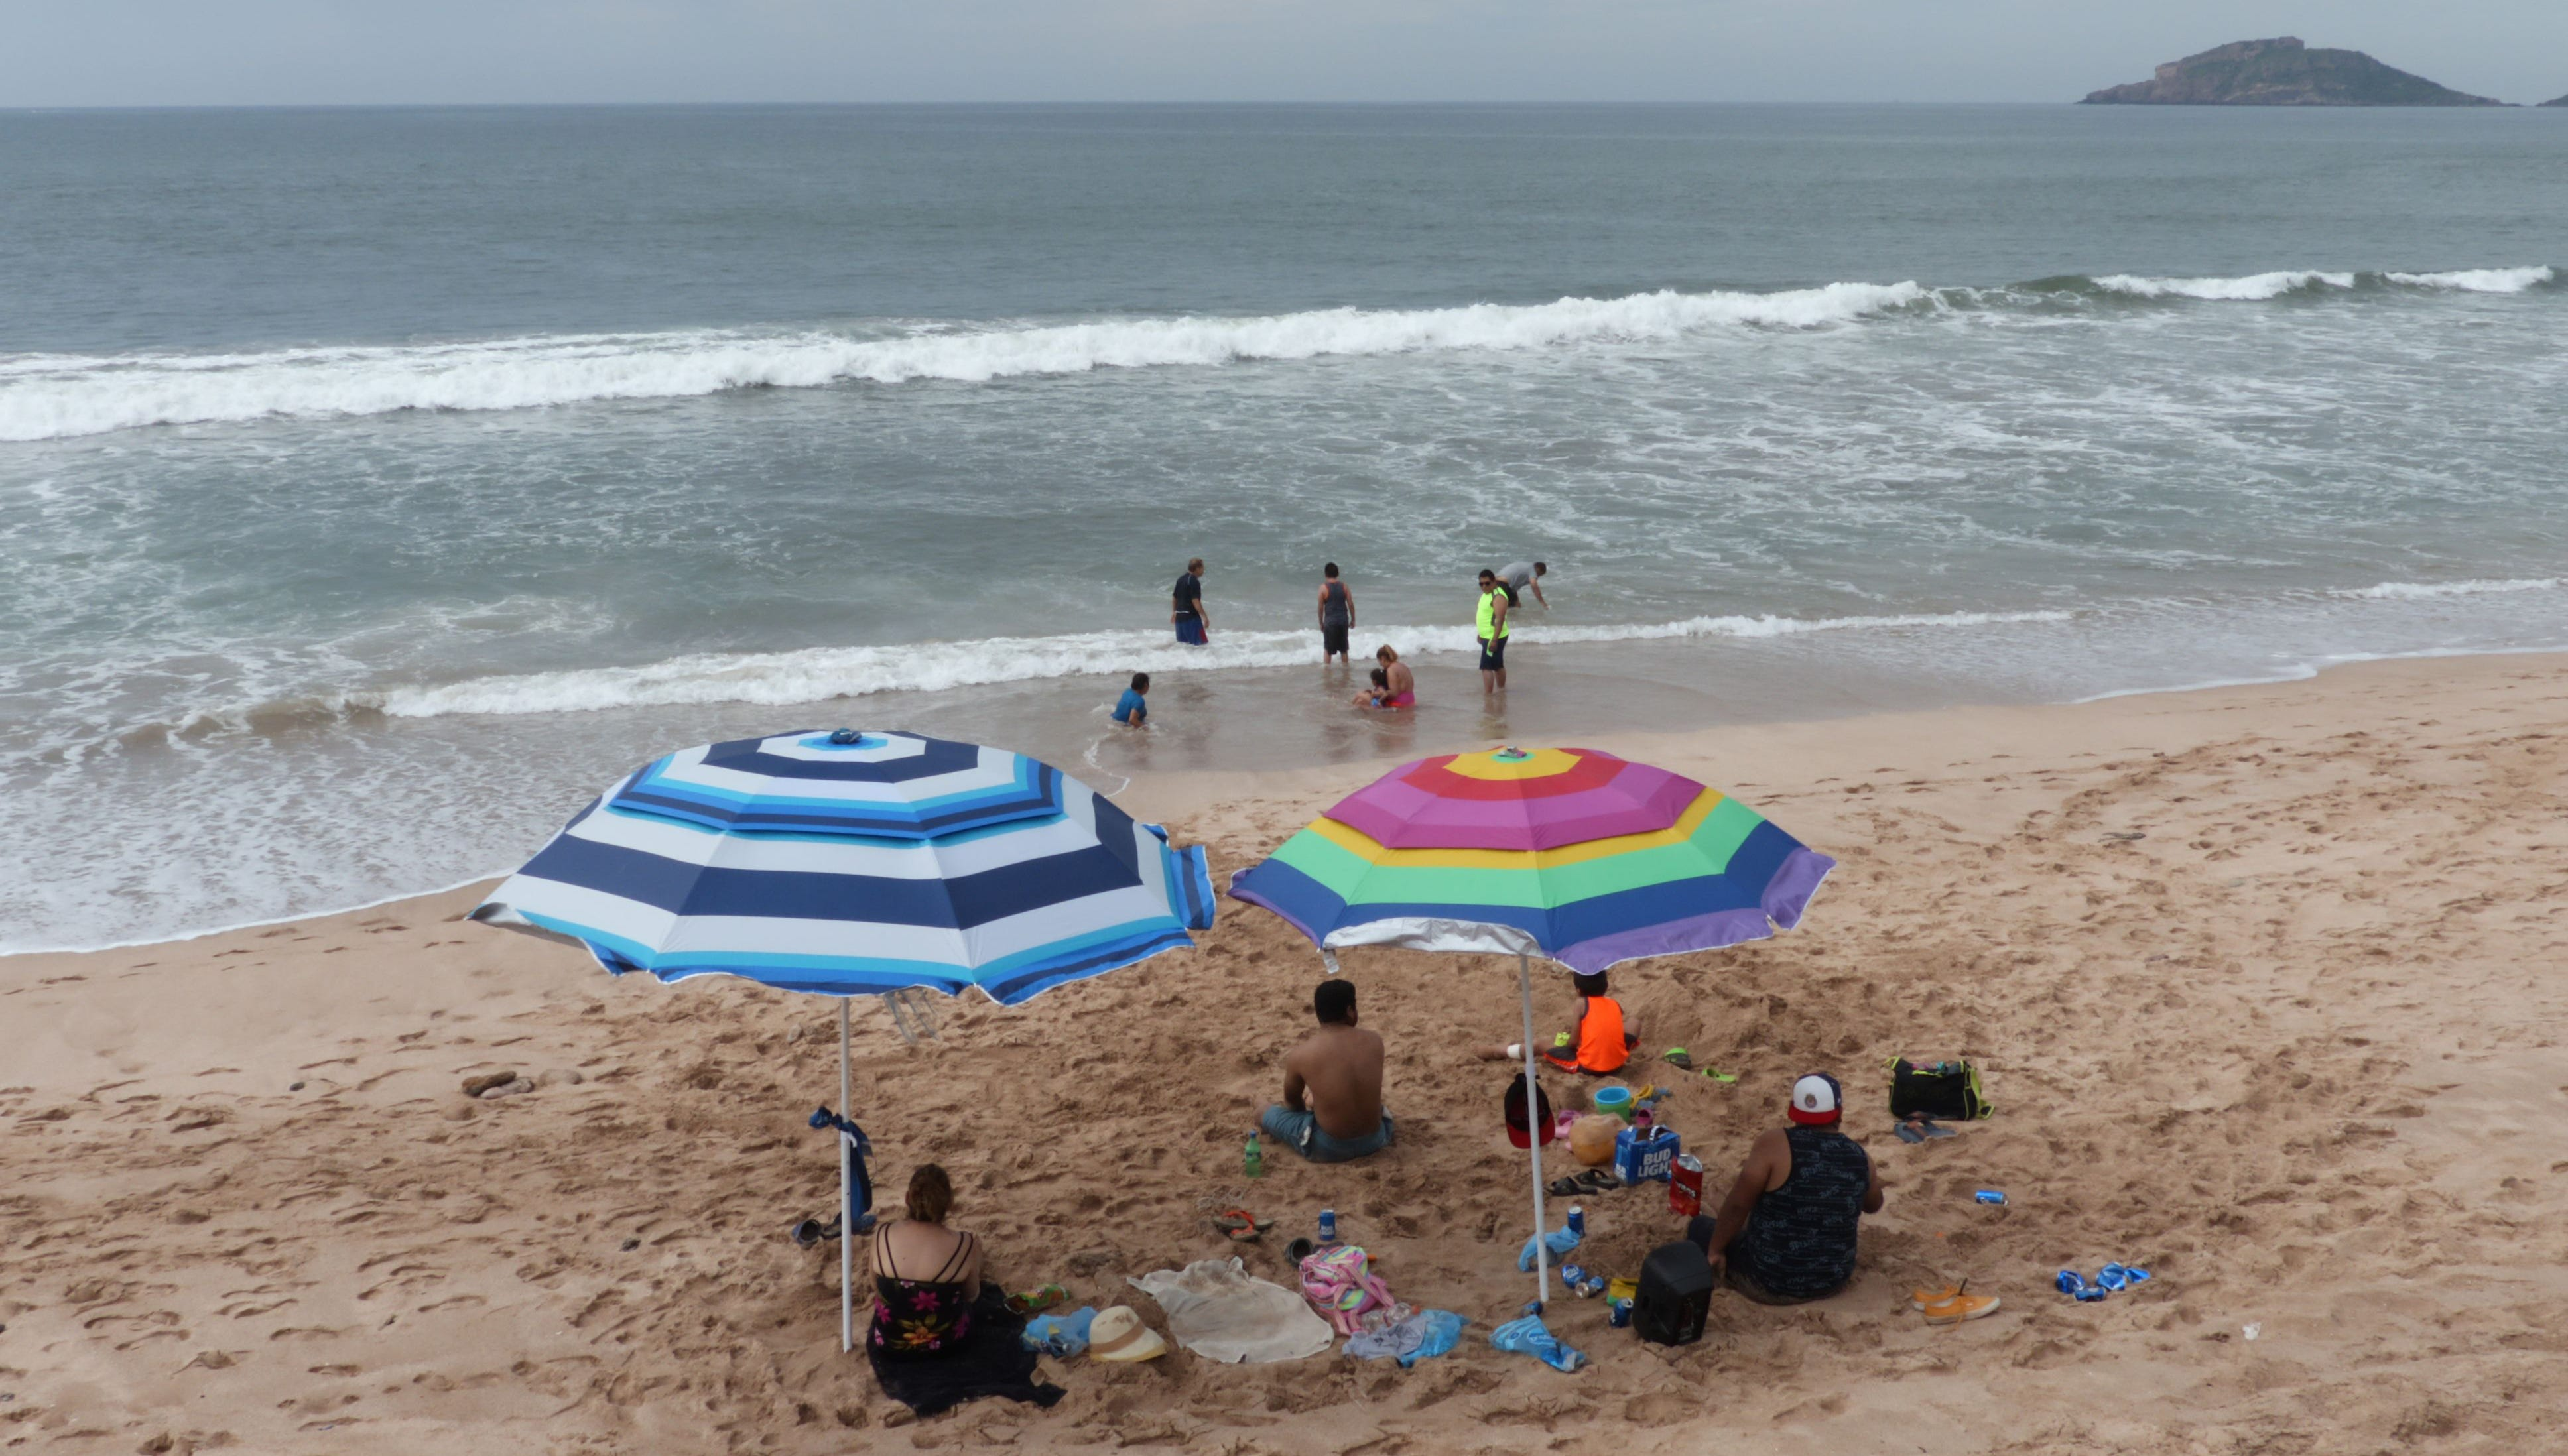 Tourists on Sunday enjoy the beach in Mazatlan, in Mexico's Sinaloa state, where Hurricane Willa is expected to land Tuesday.